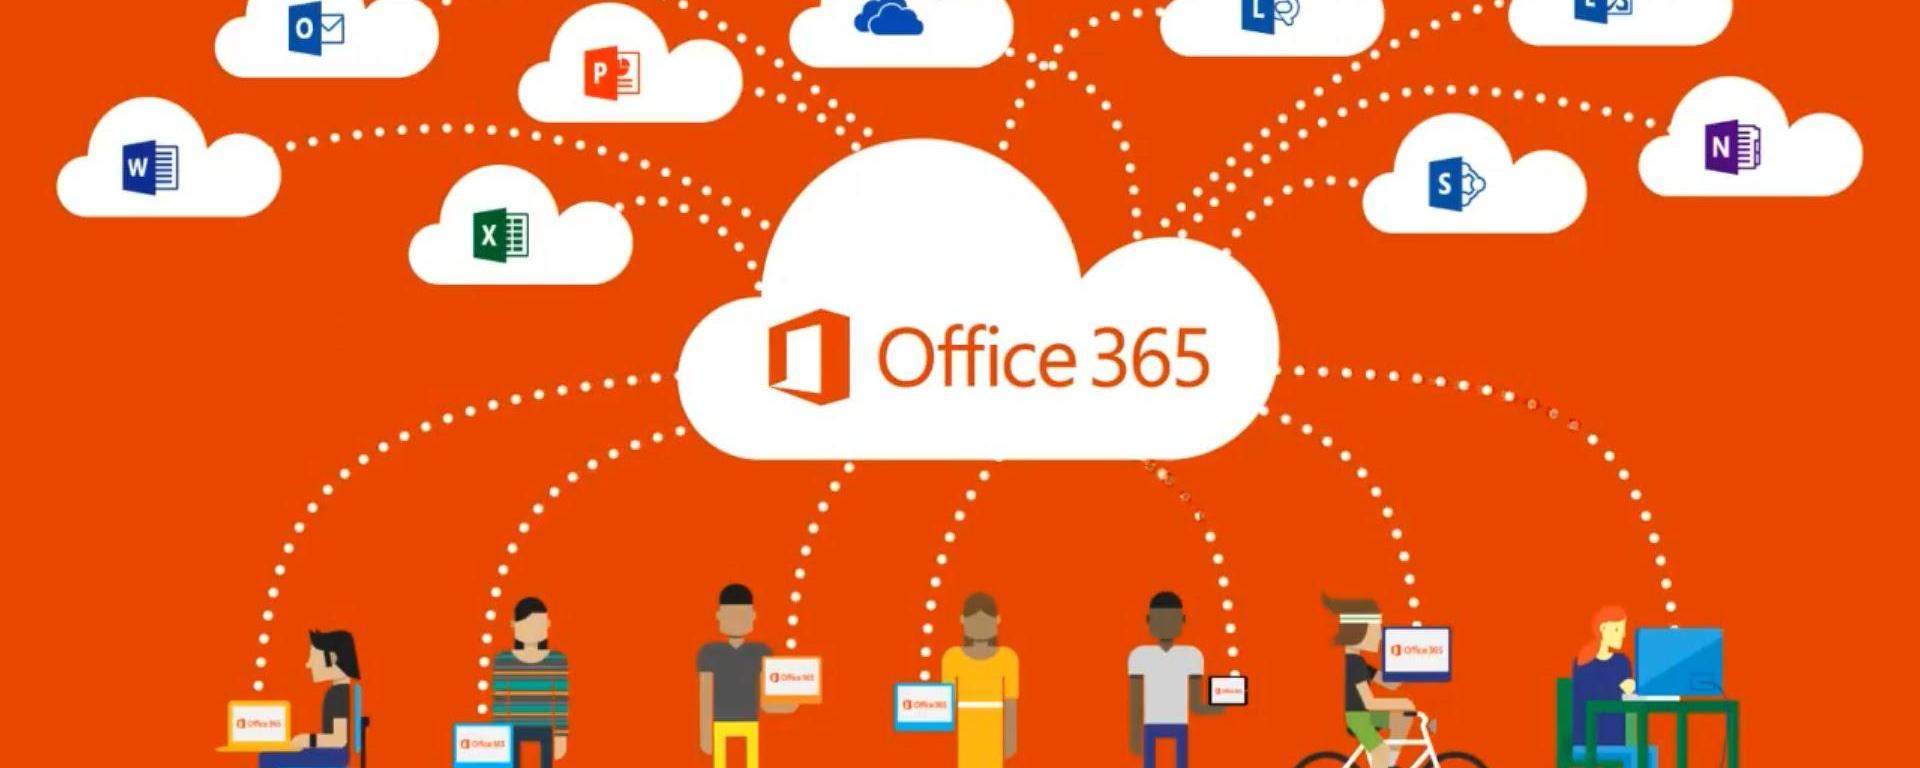 microsoft office 365 free download full version 2016